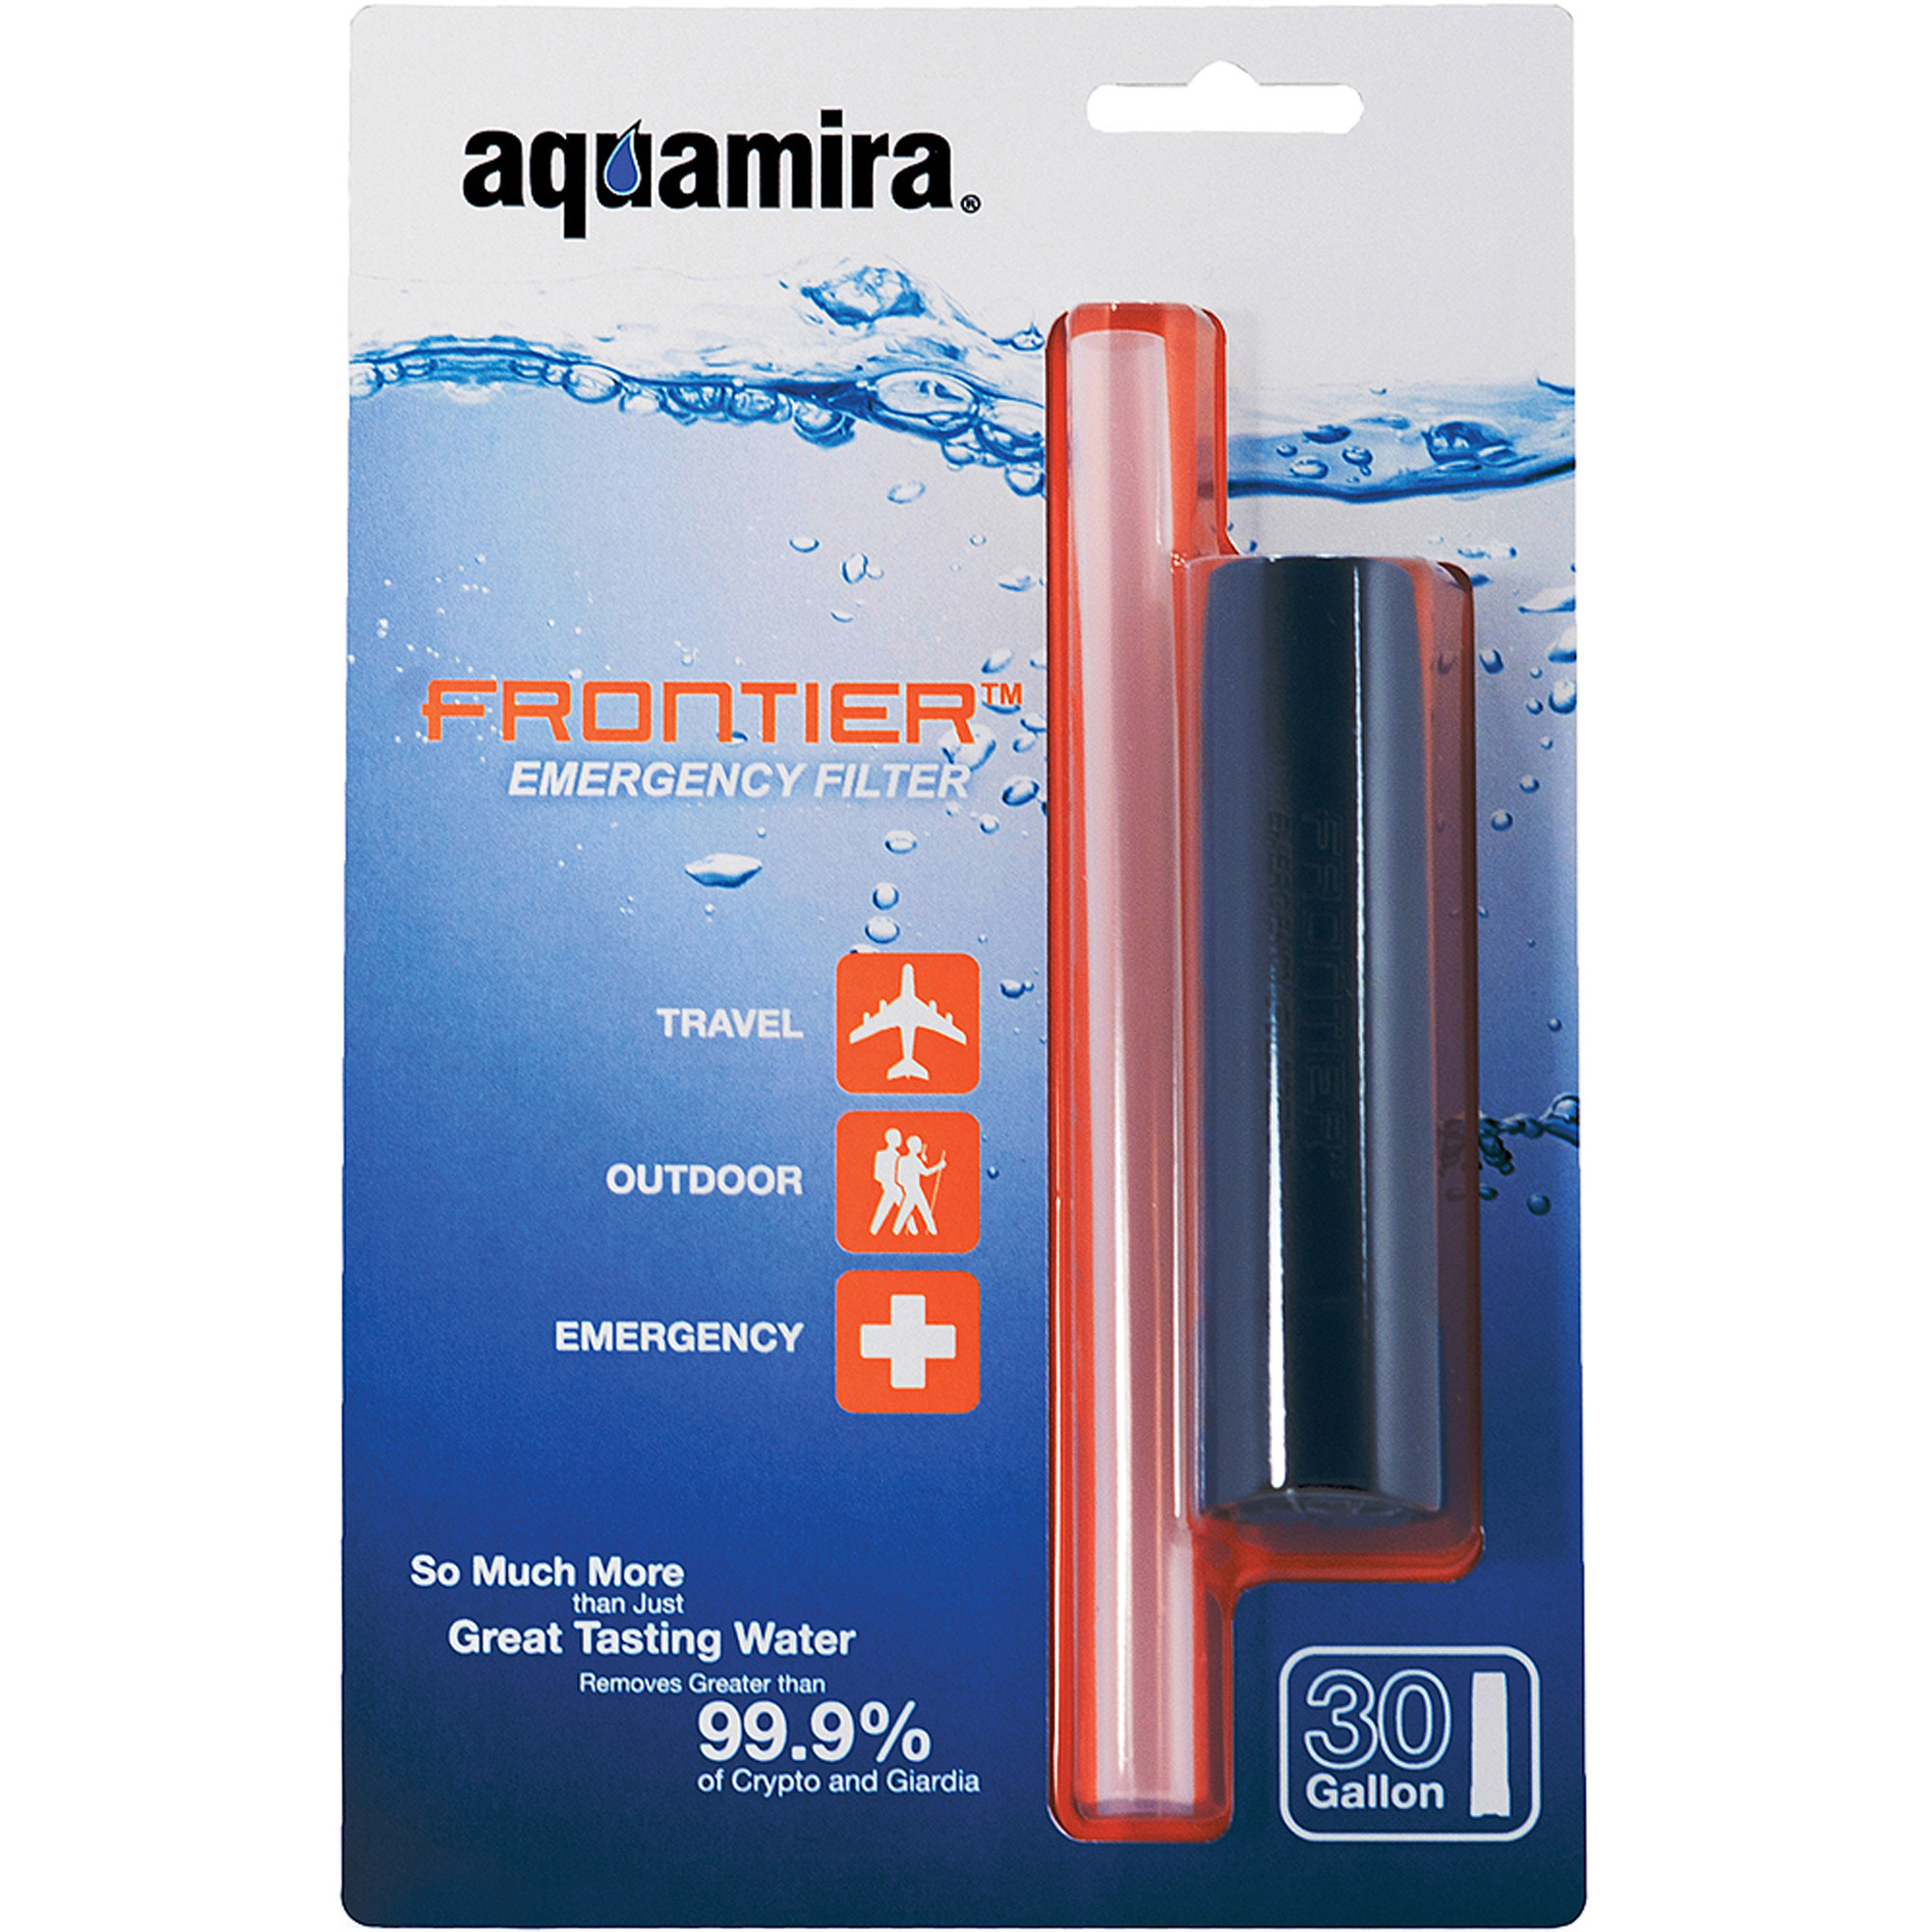 Aquamira Frontier Filter, Emergency Water Filter System, Filters Up to 20 Gallons of Water by Aquamira Technologies